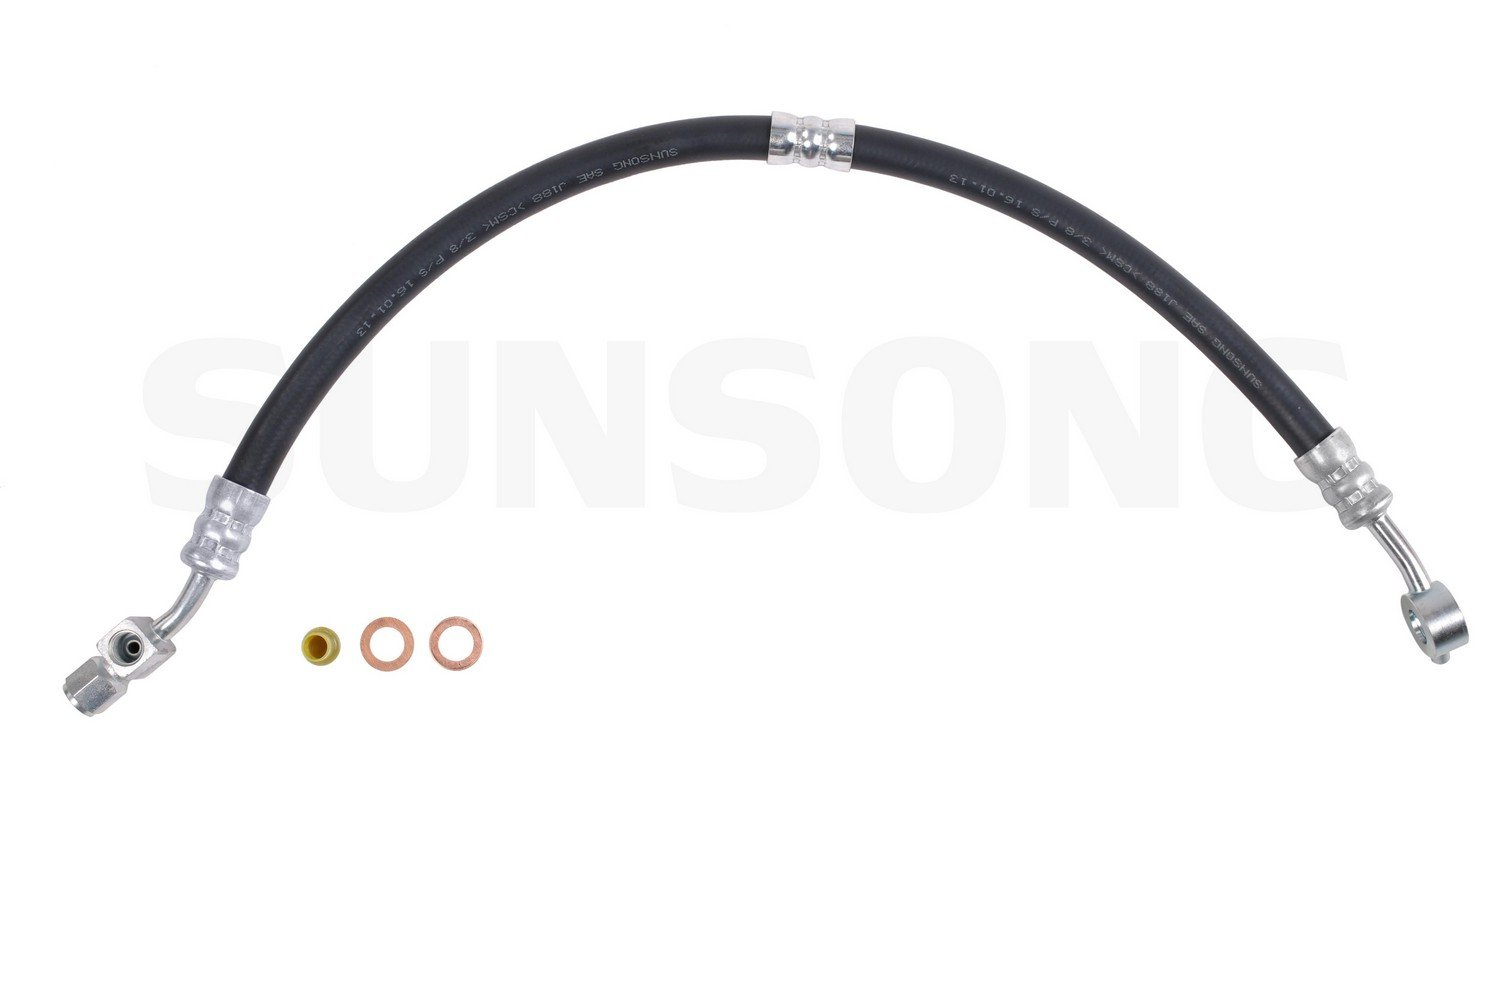 Nissan Sunsong 3402693 Power Steering Pressure Hose Assembly